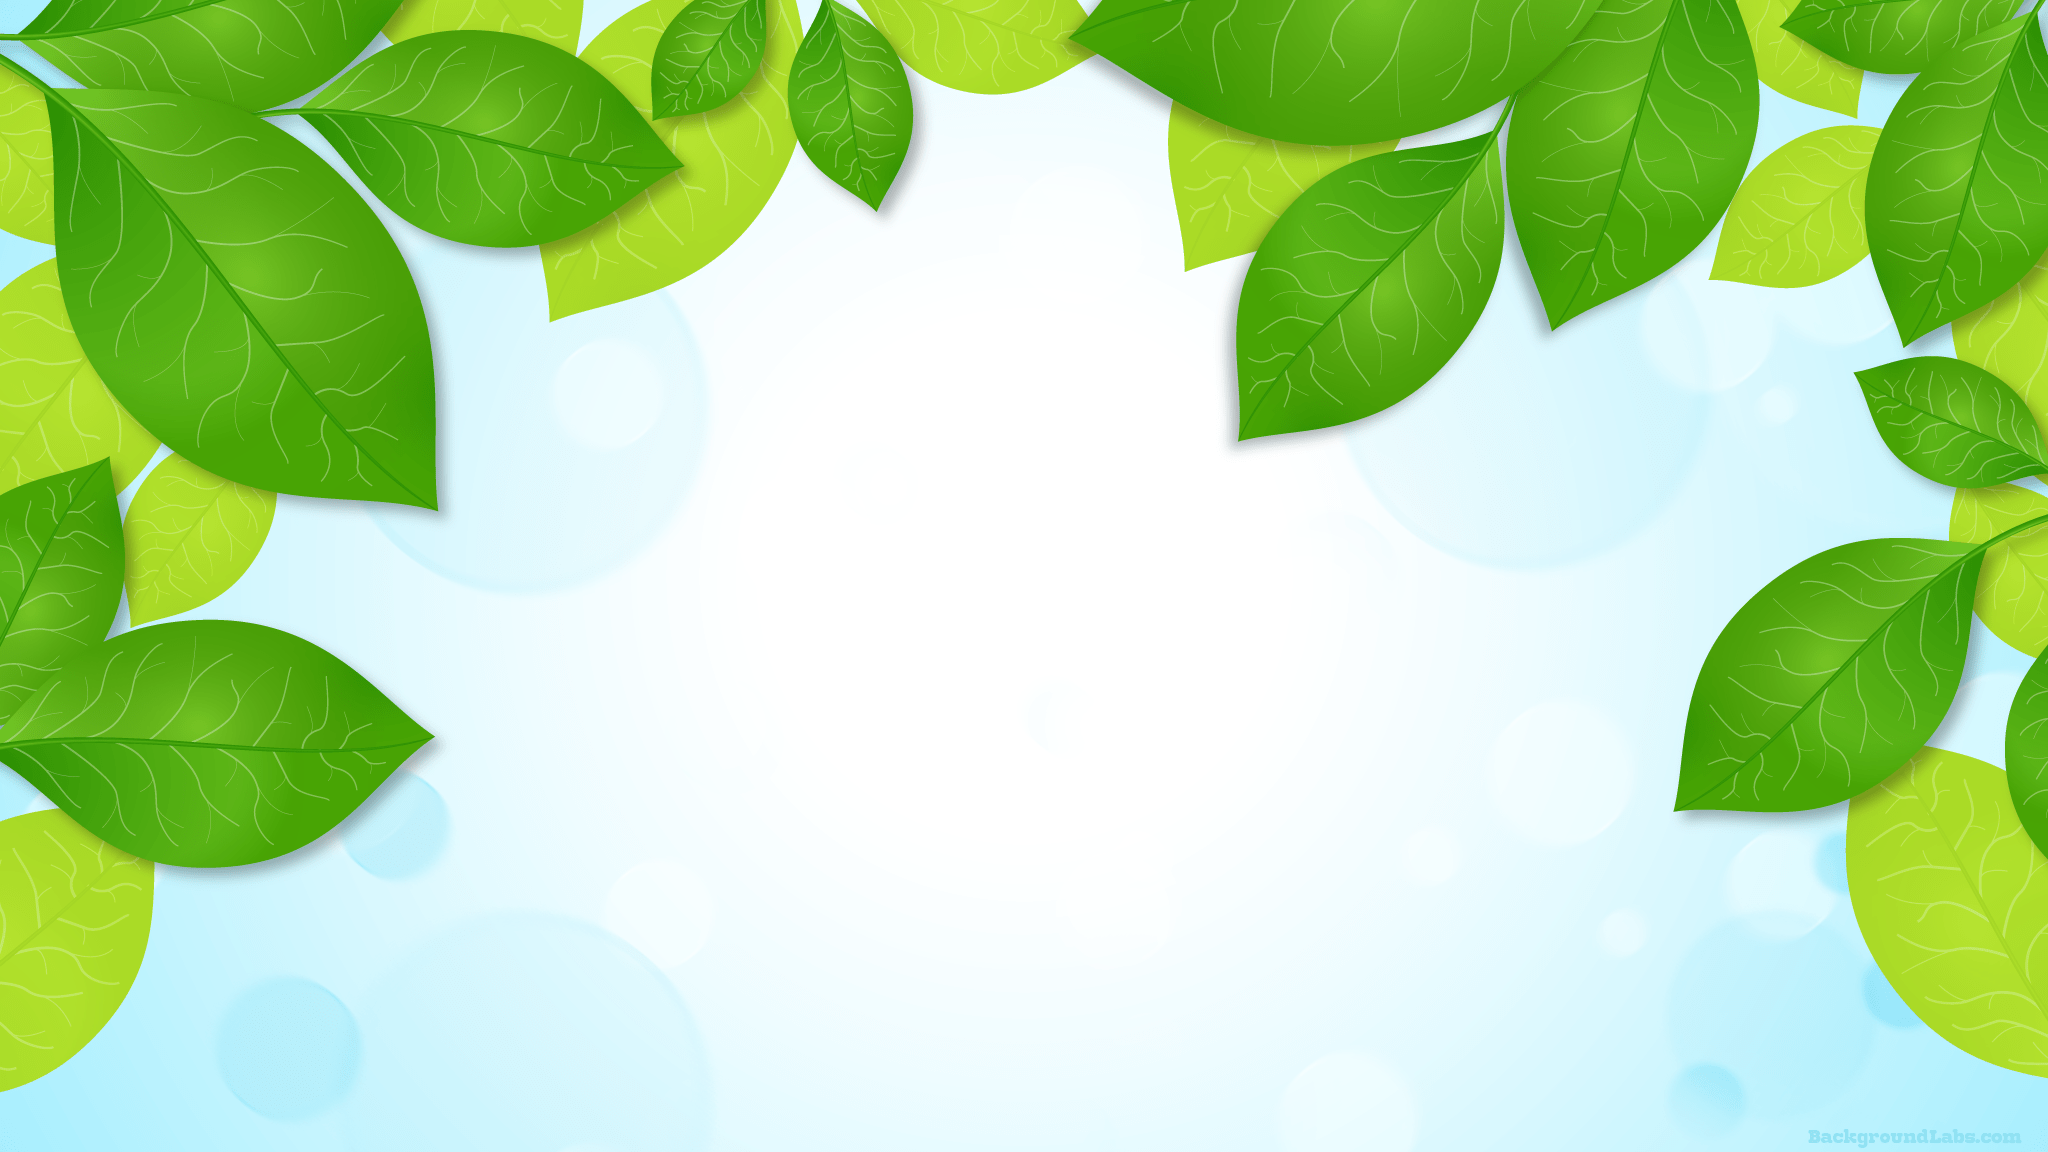 Wallpaper Design Black Green Leaves Frame Background Background Labs